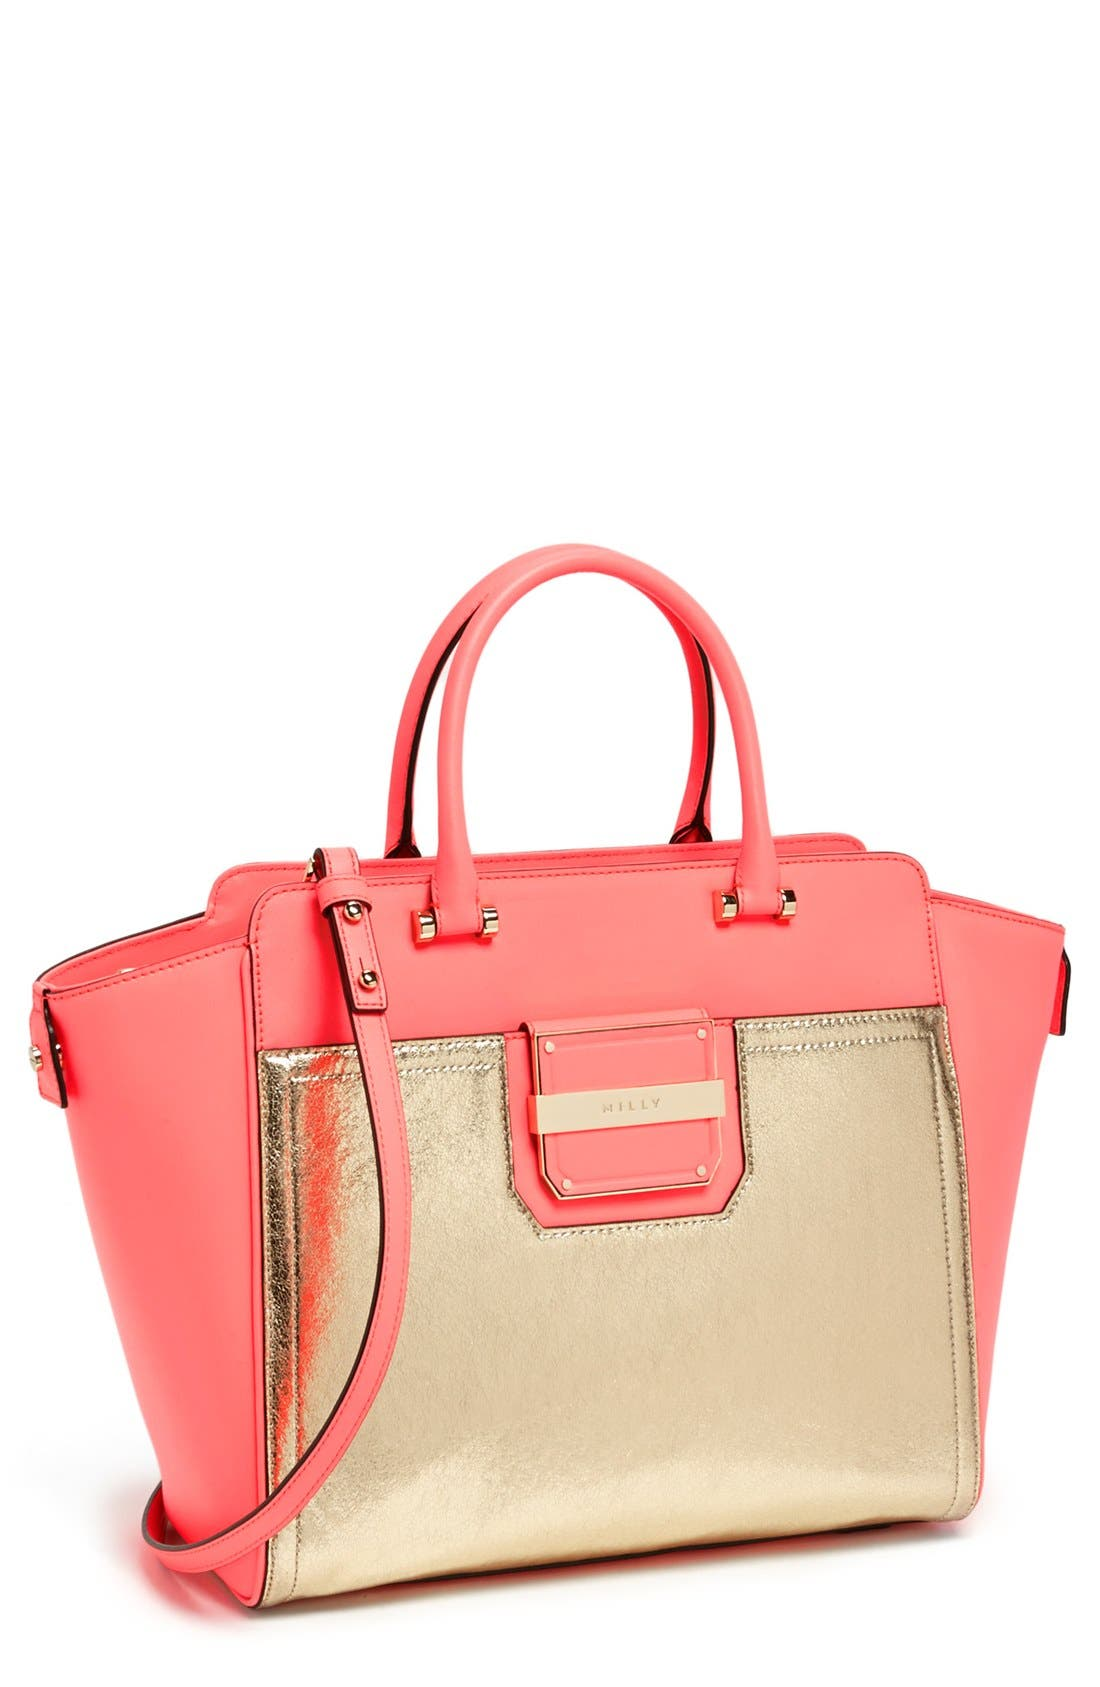 Main Image - Milly 'Colby' Metallic Leather Tote